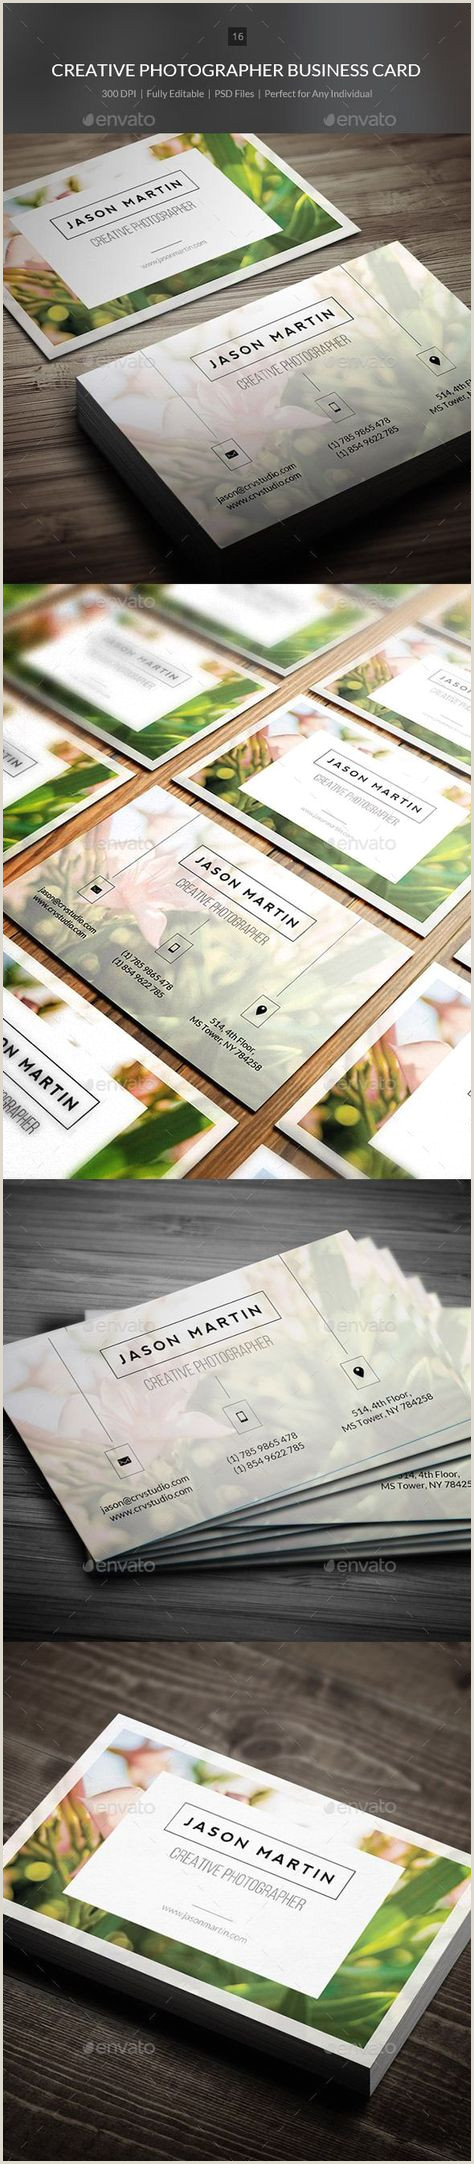 Unique Ways To Present Business Cards 40 Trendy Ideas Photography Business Cards Template Creative